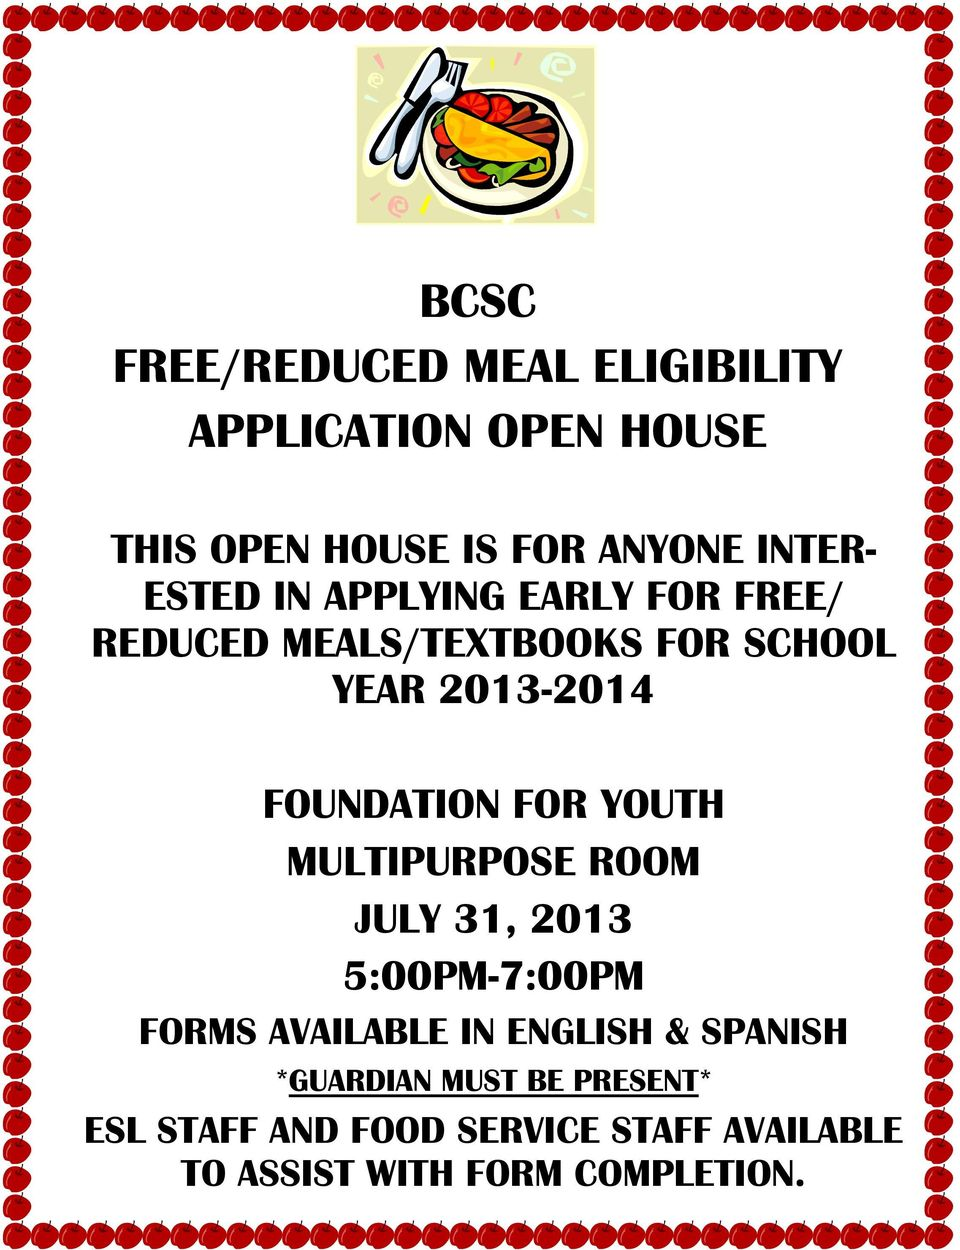 FOR YOUTH MULTIPURPOSE ROOM JULY 31, 2013 5:00PM-7:00PM FORMS AVAILABLE IN ENGLISH & SPANISH